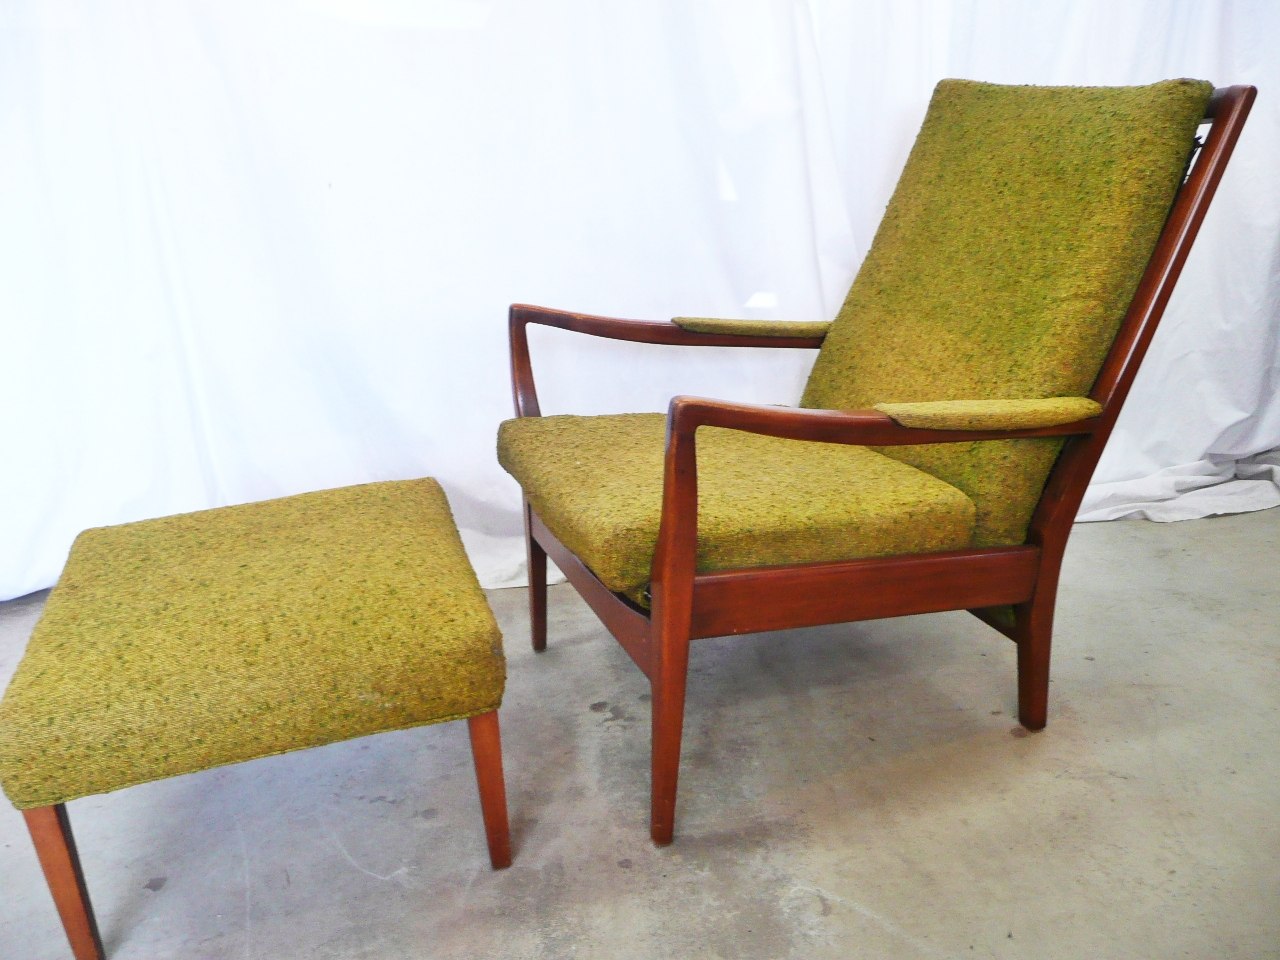 Modern mid century danish vintage furniture shop used for Modern chairs for sale